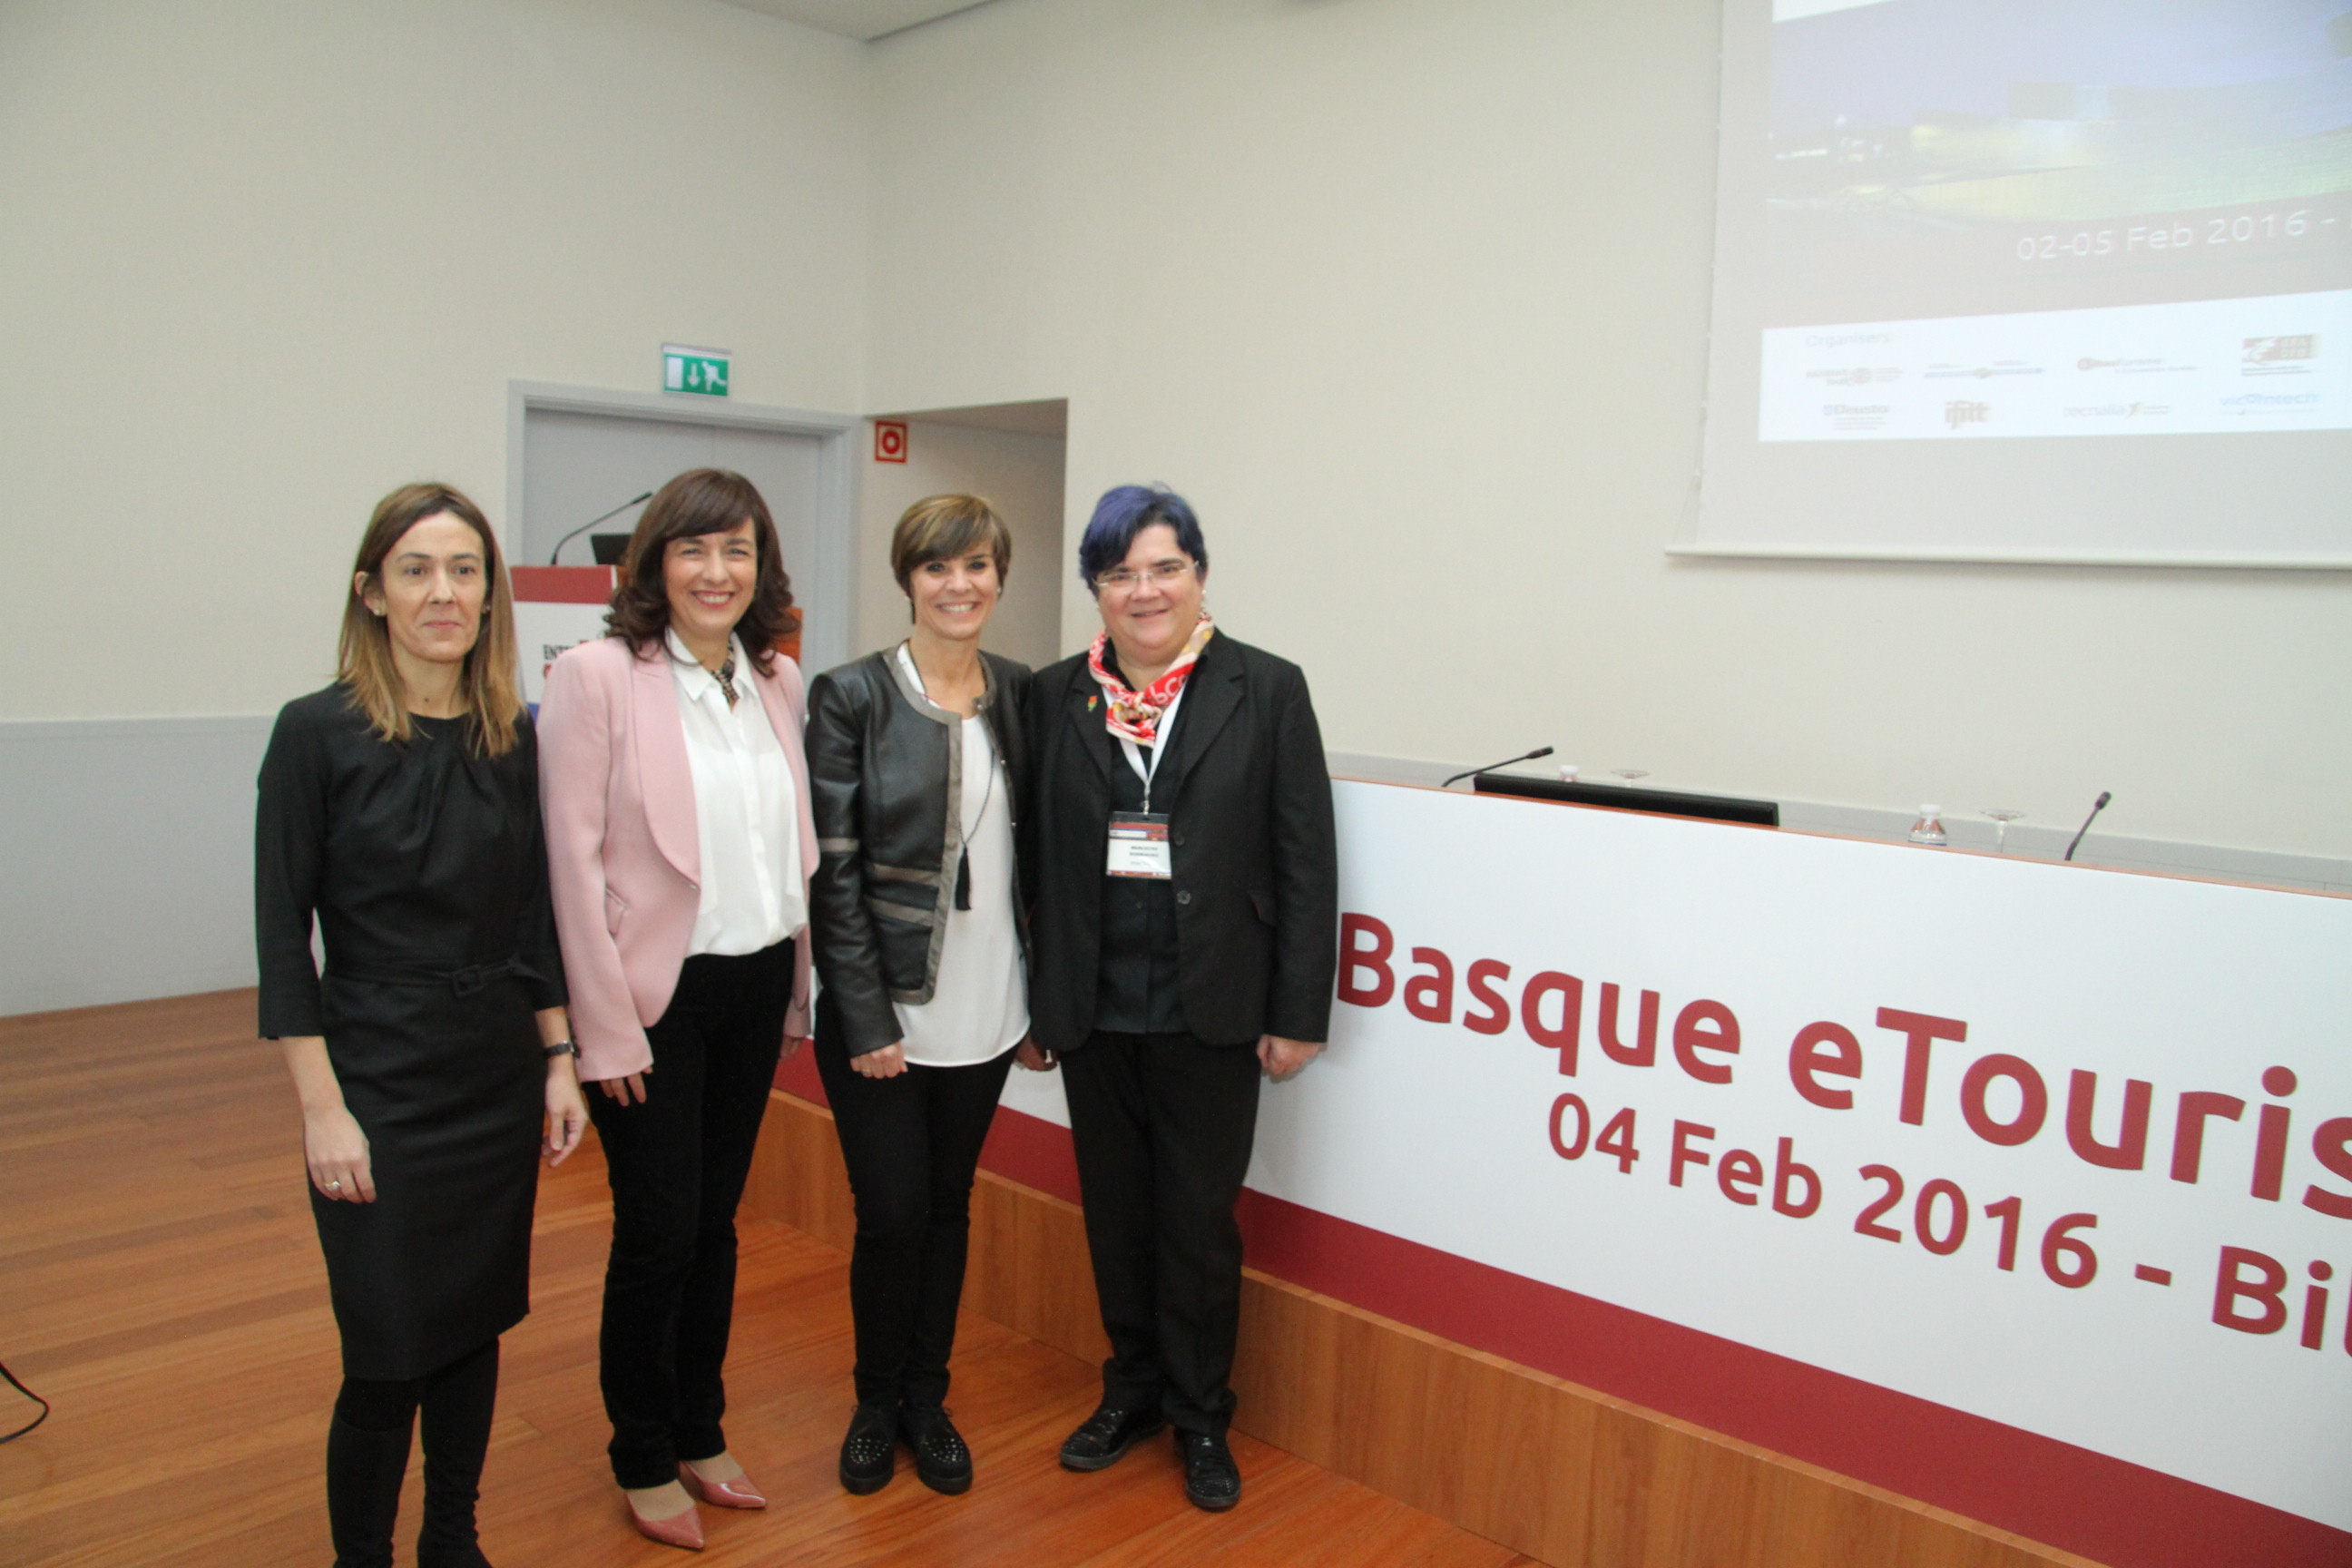 basque_etourism_day_02.jpg